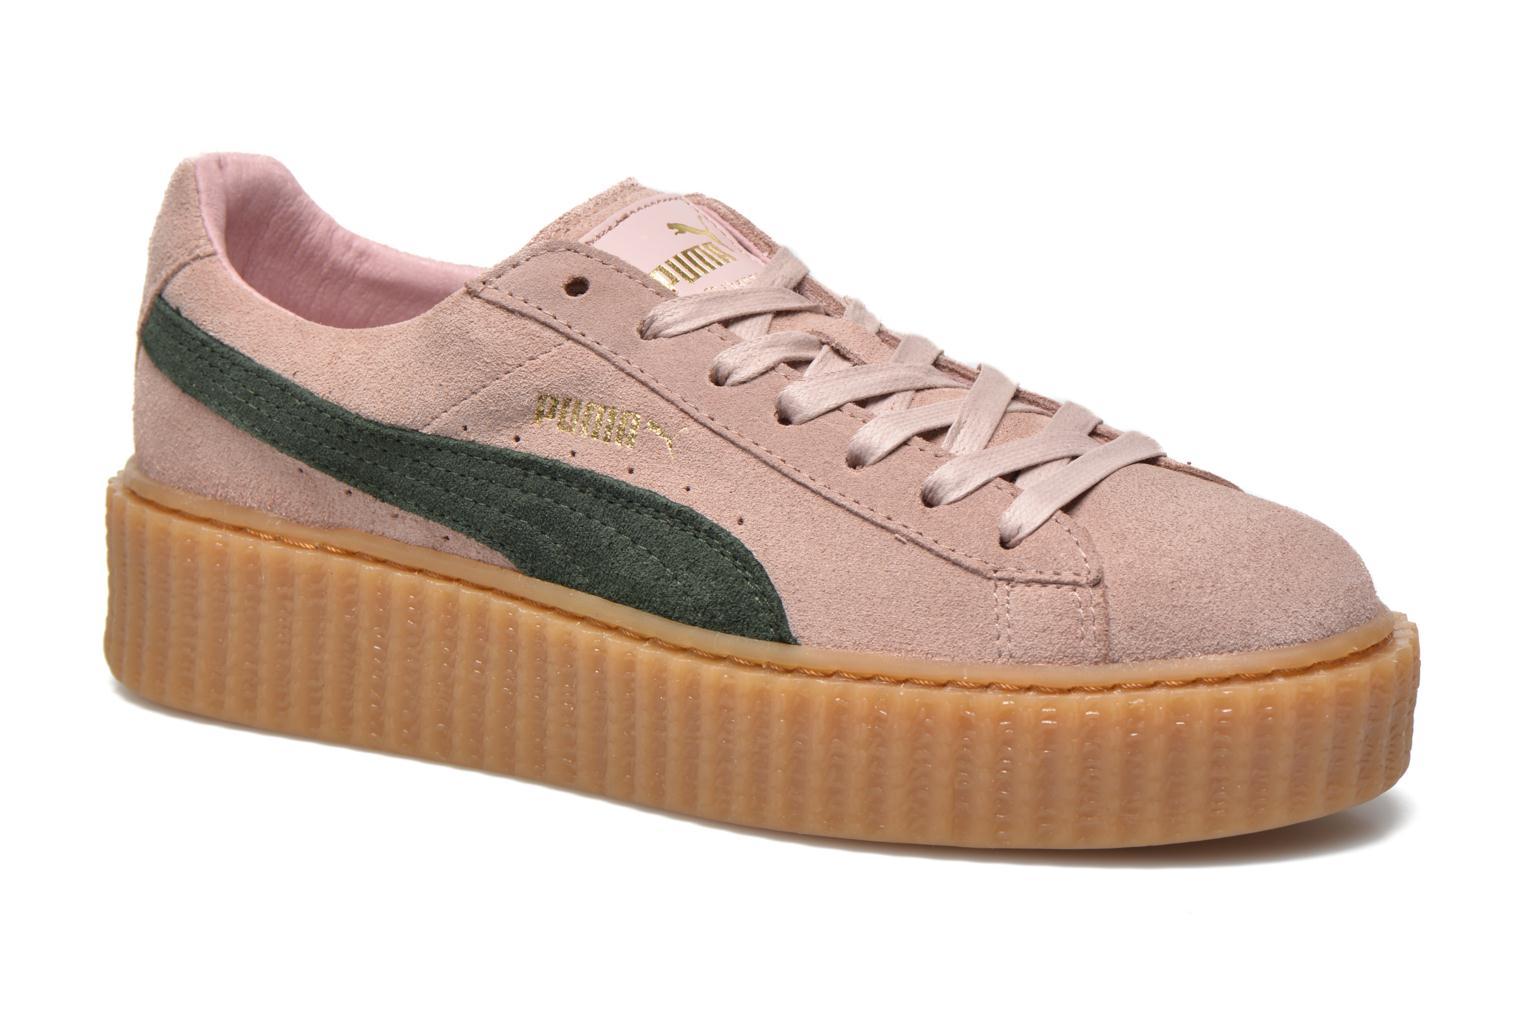 puma creepers rose pale